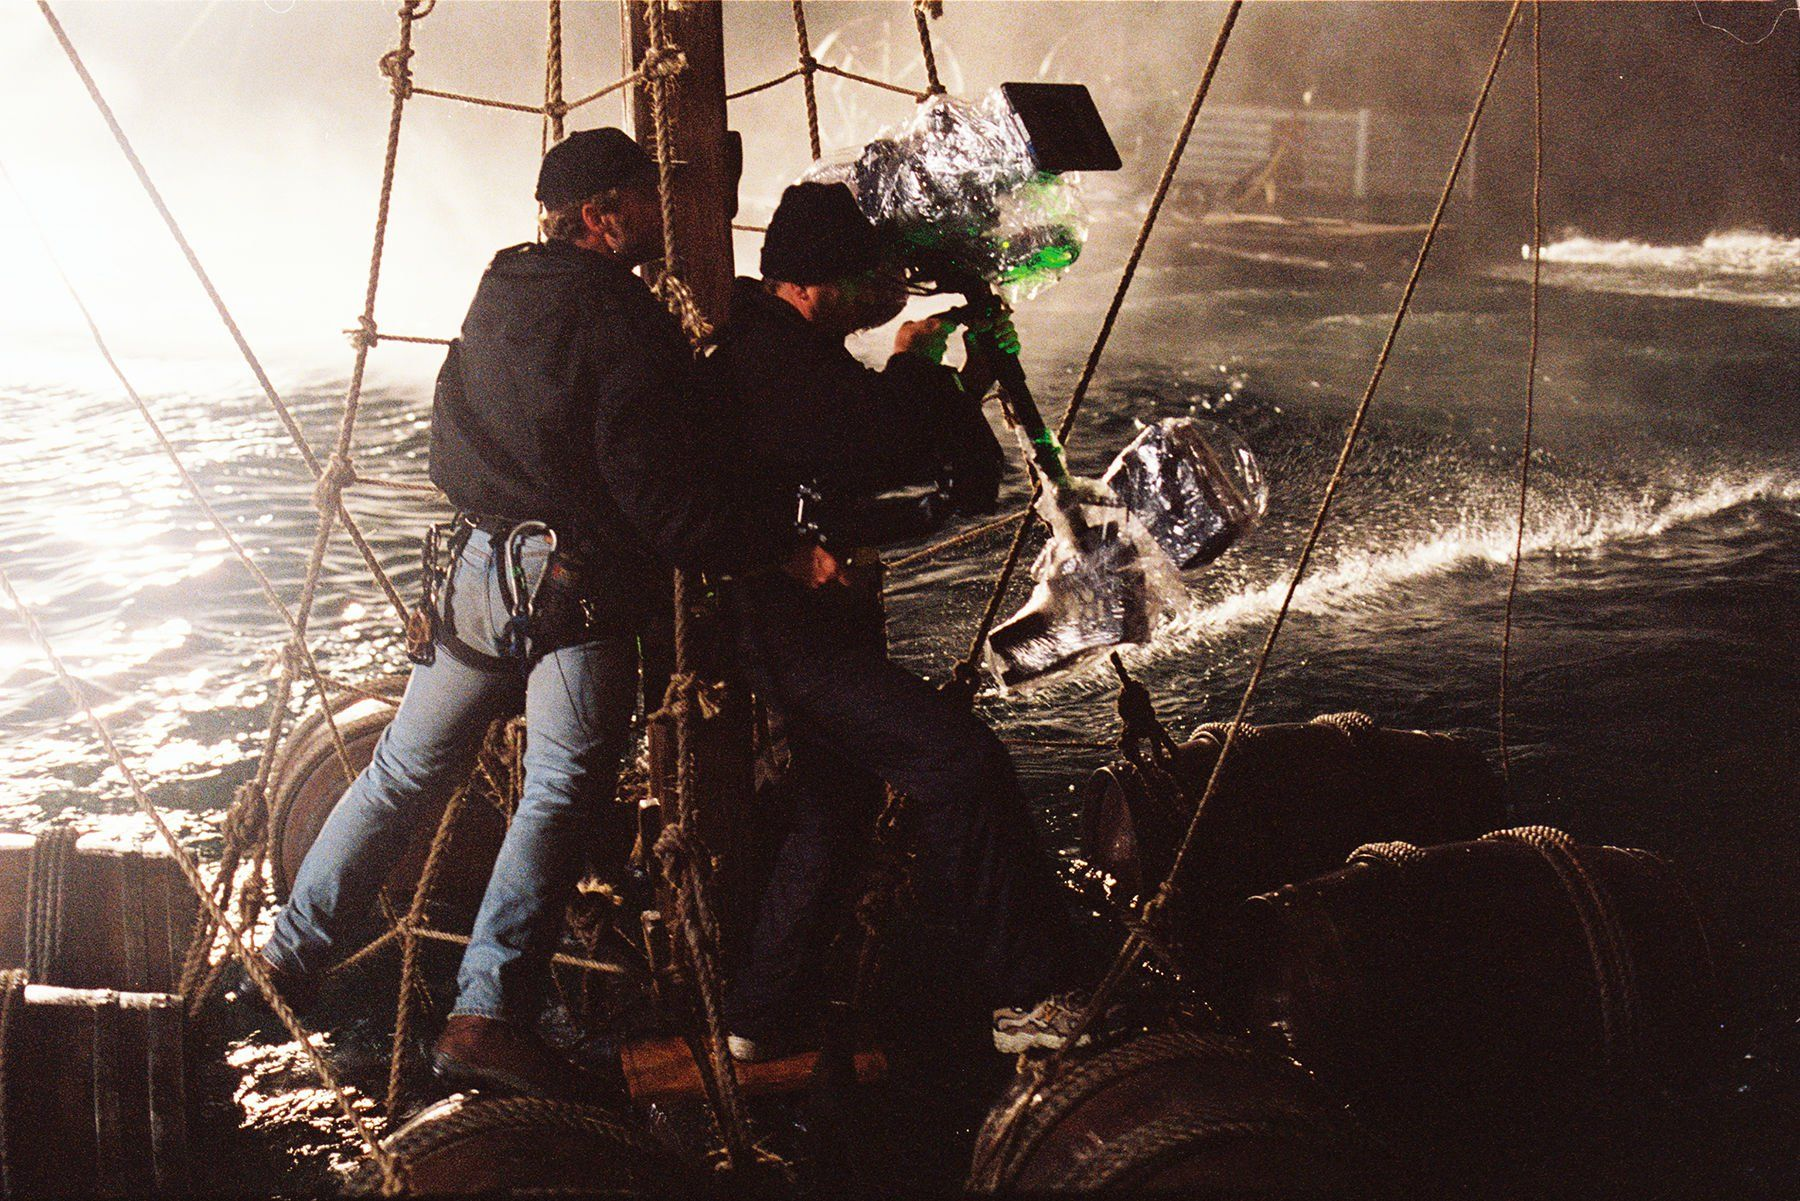 Subject to the Requirements of the Service: Peter Weir's 'Master and Commander: The Far Side of the World'